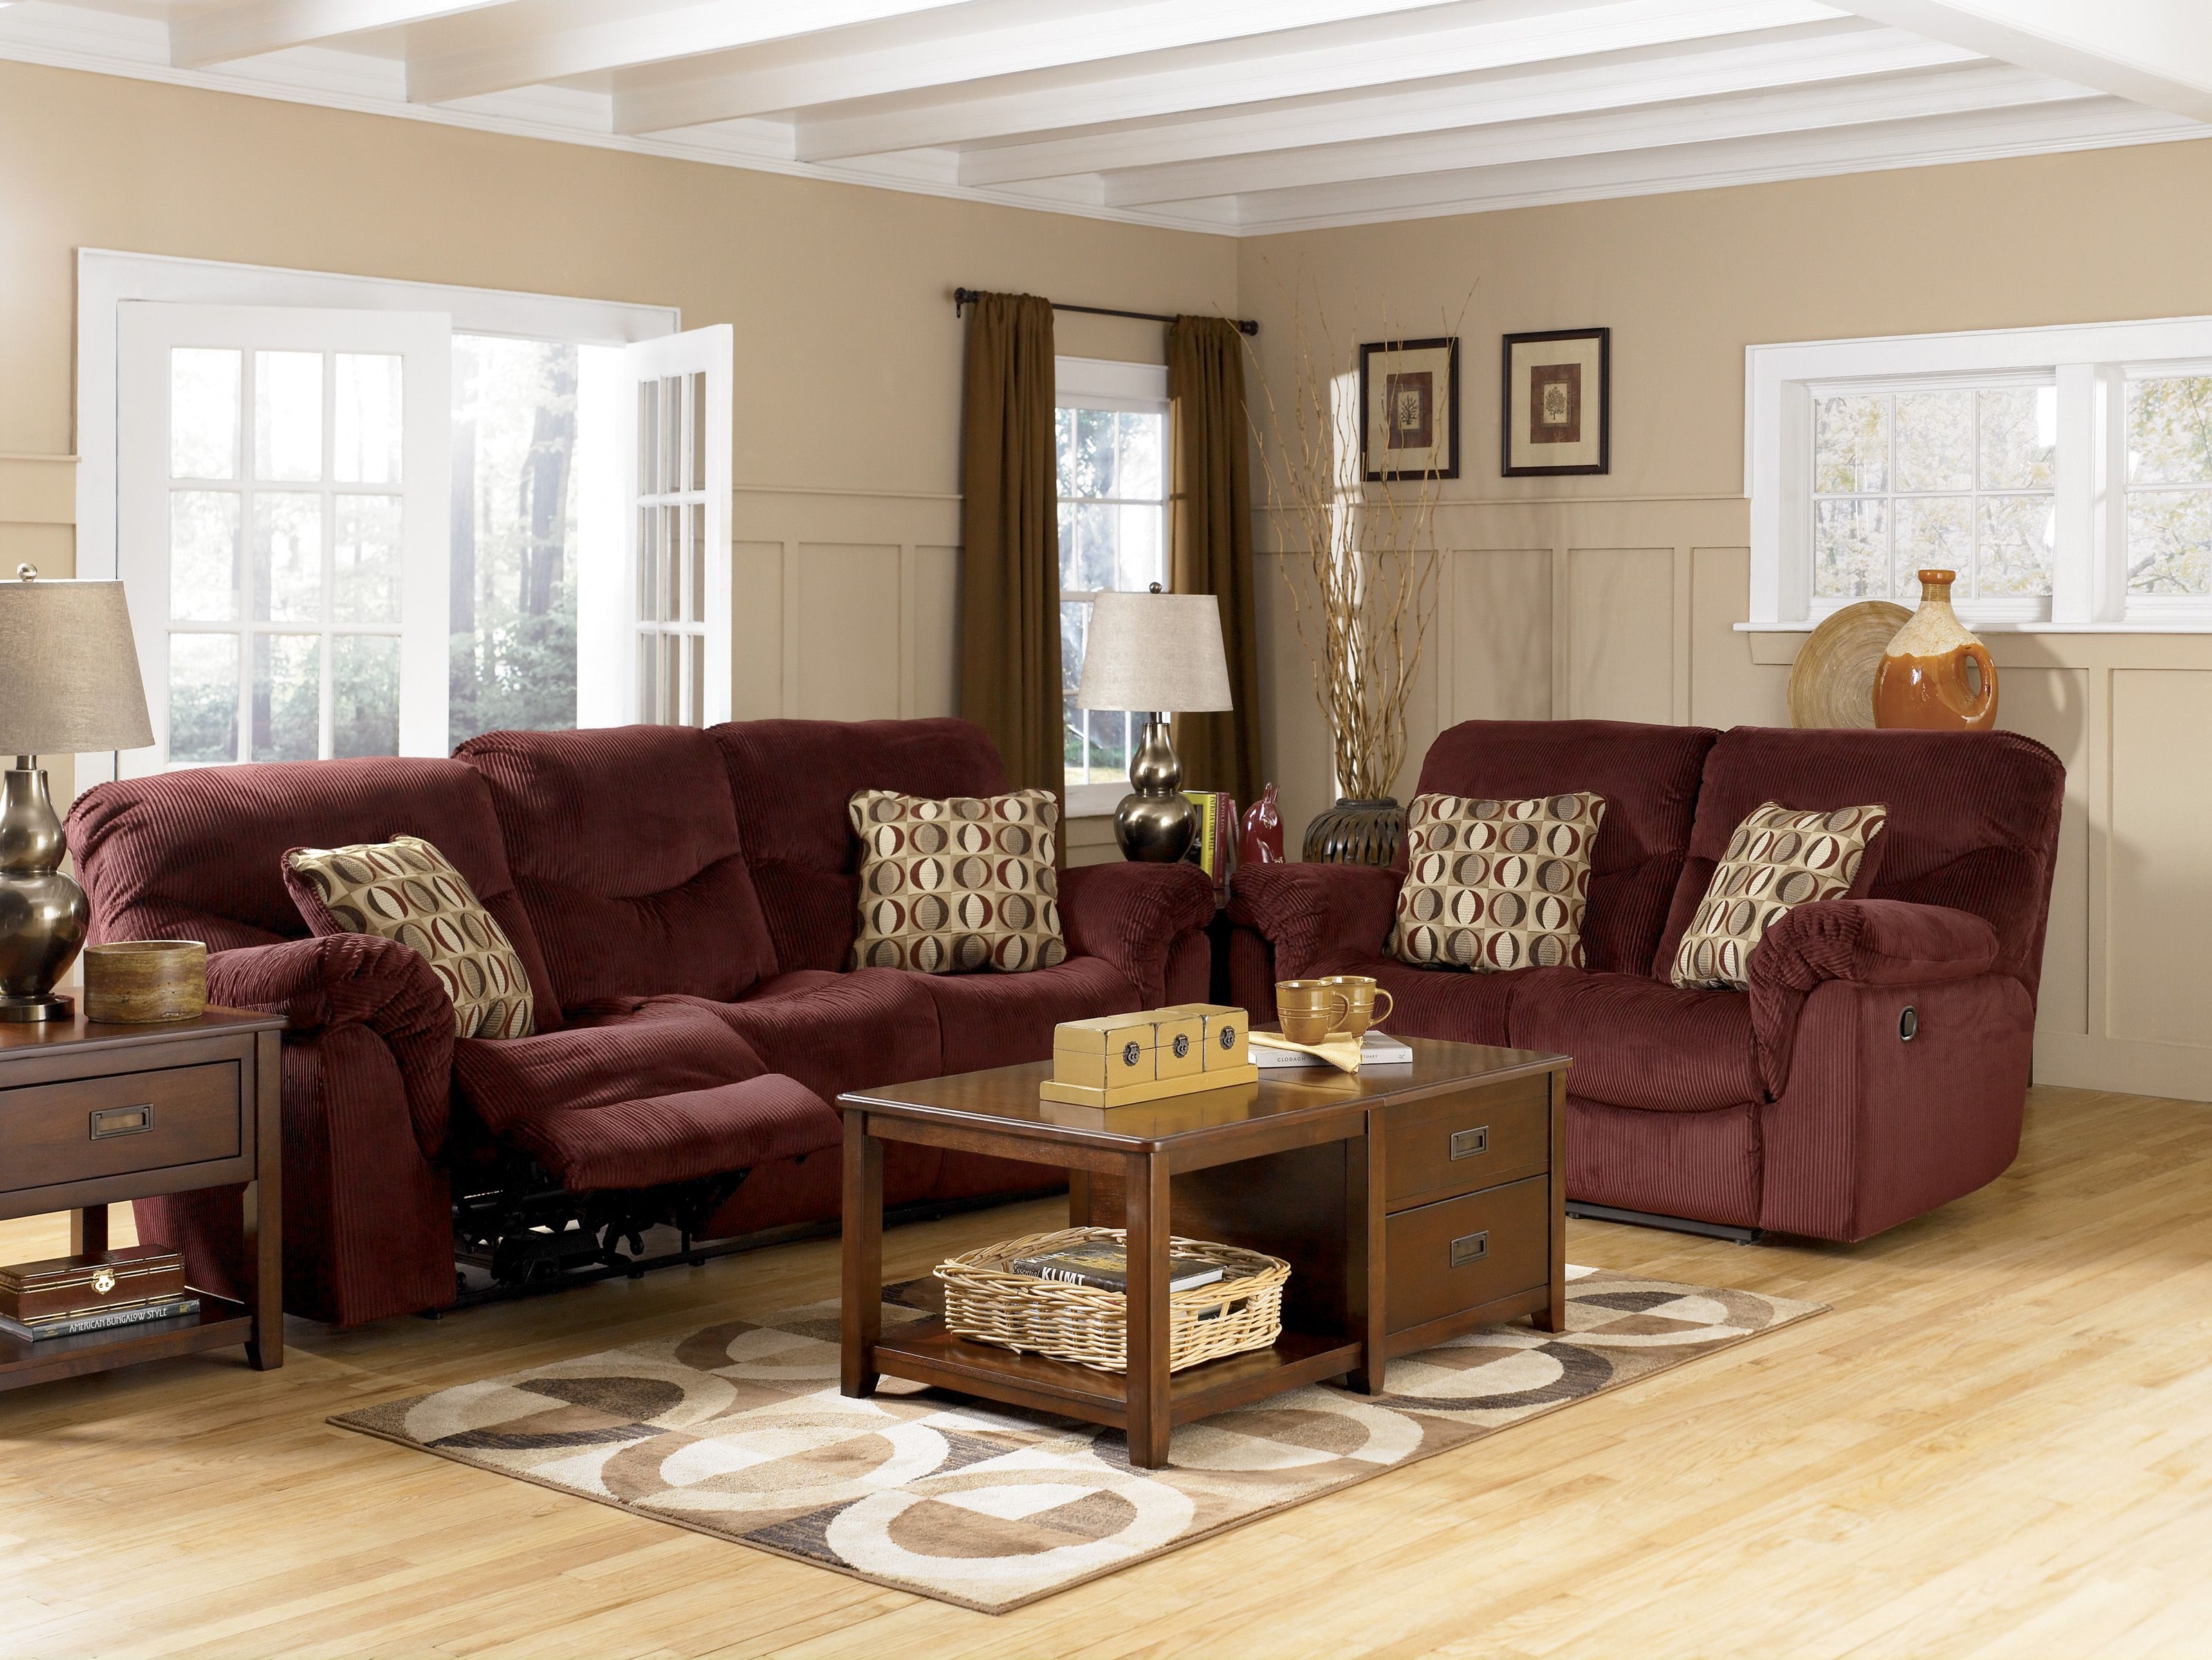 living rooms with bugundy sofas | as_68601 68601 motivation